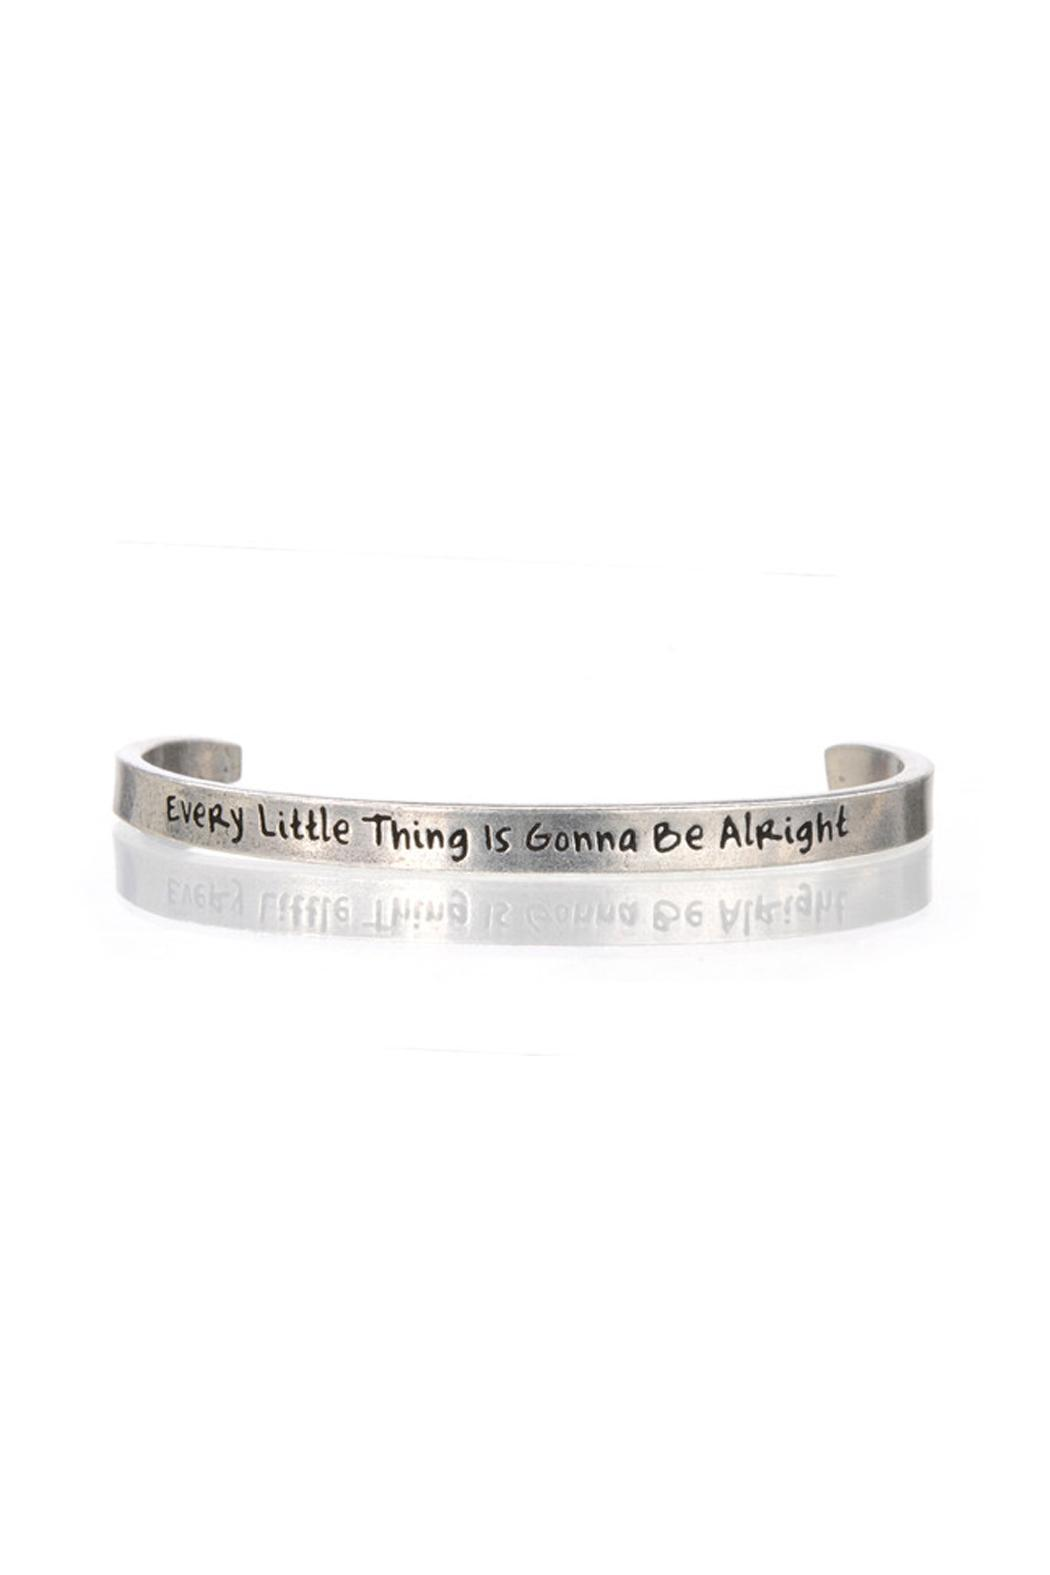 Whitney Howard Designs Silver Cuff Bracelet - Main Image